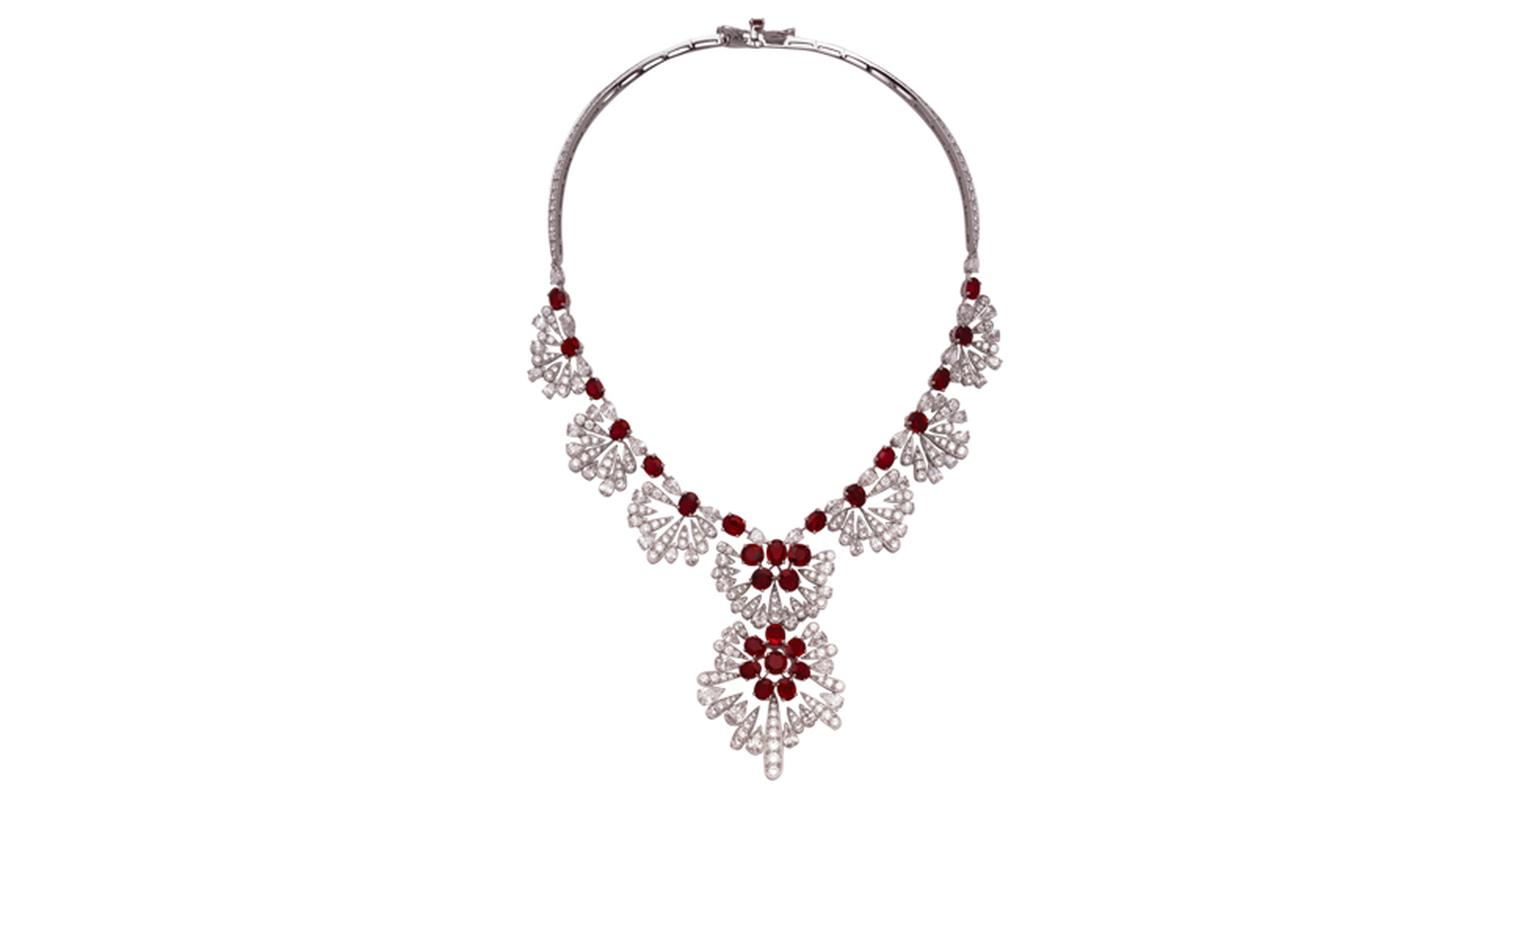 VAN CLEEF & ARPLES. Jazz necklace in white gold, oval-cut rubies, round pear shaped diamonds. POA